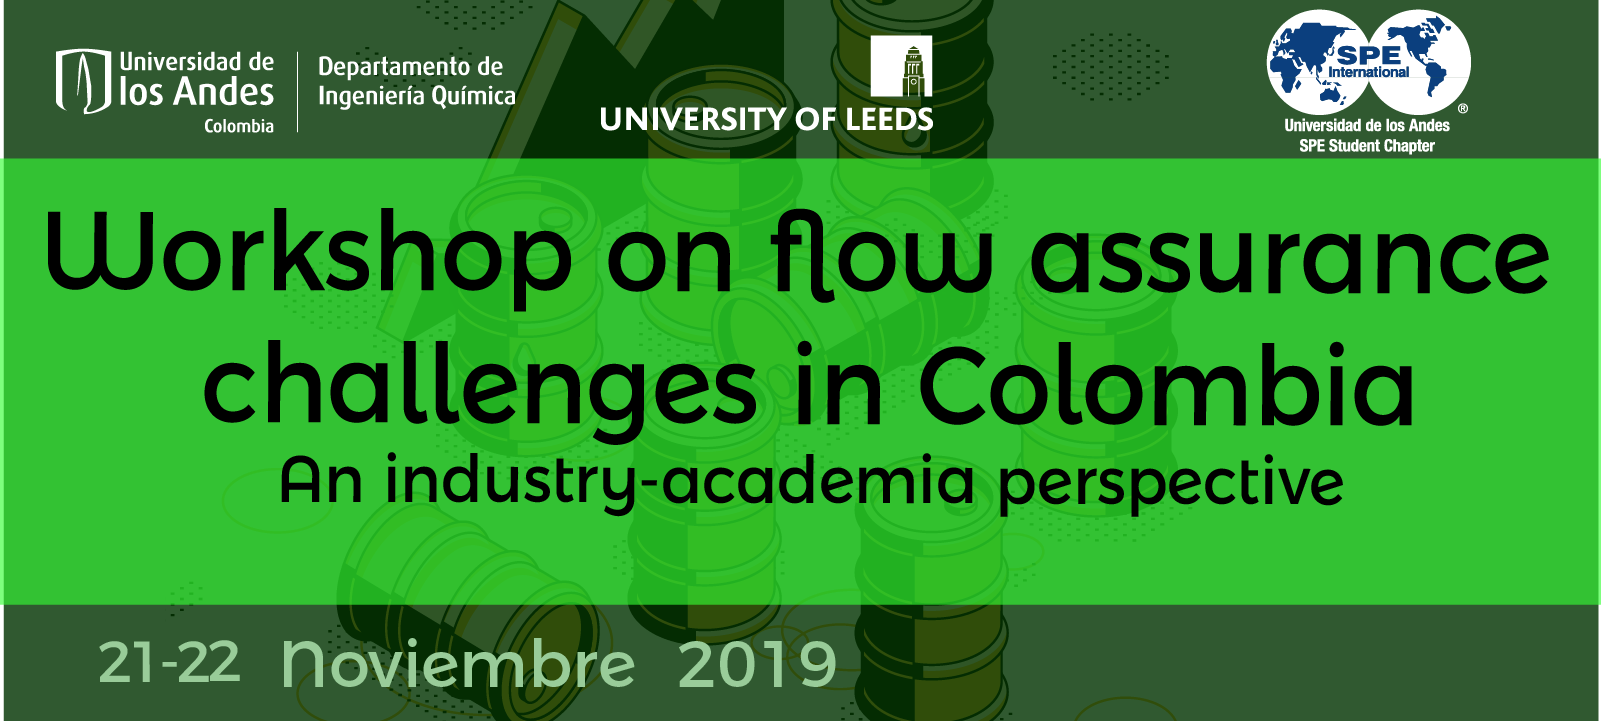 Workshop on flow assurance callenges in Colombia | Uniandes